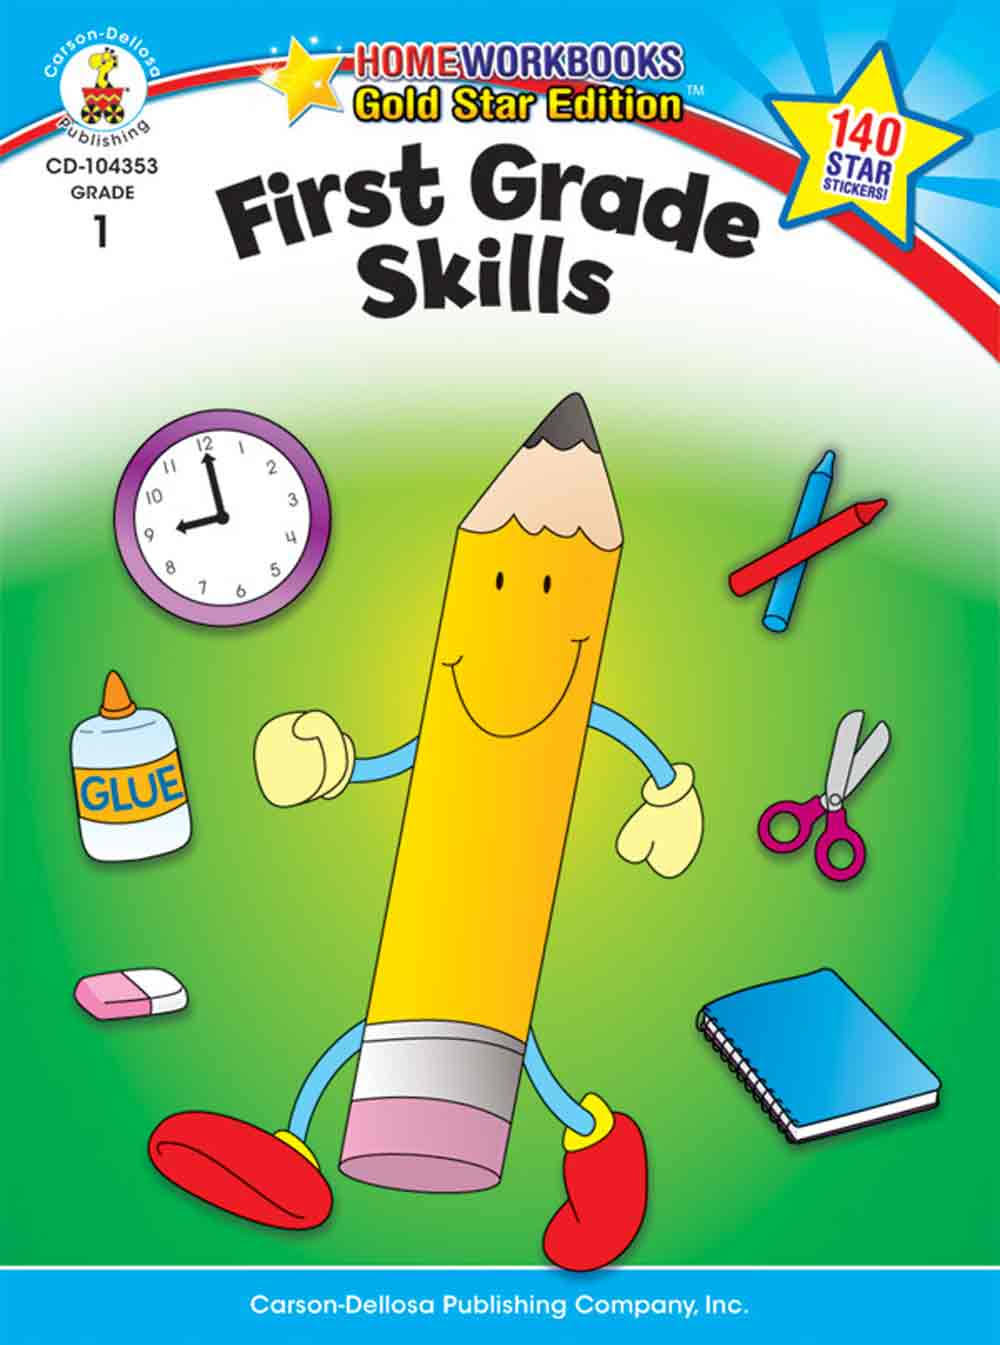 First Grade Skills Grade 1: Gold Star Edition Home Workbooks - Carson-Dellosa Publishing